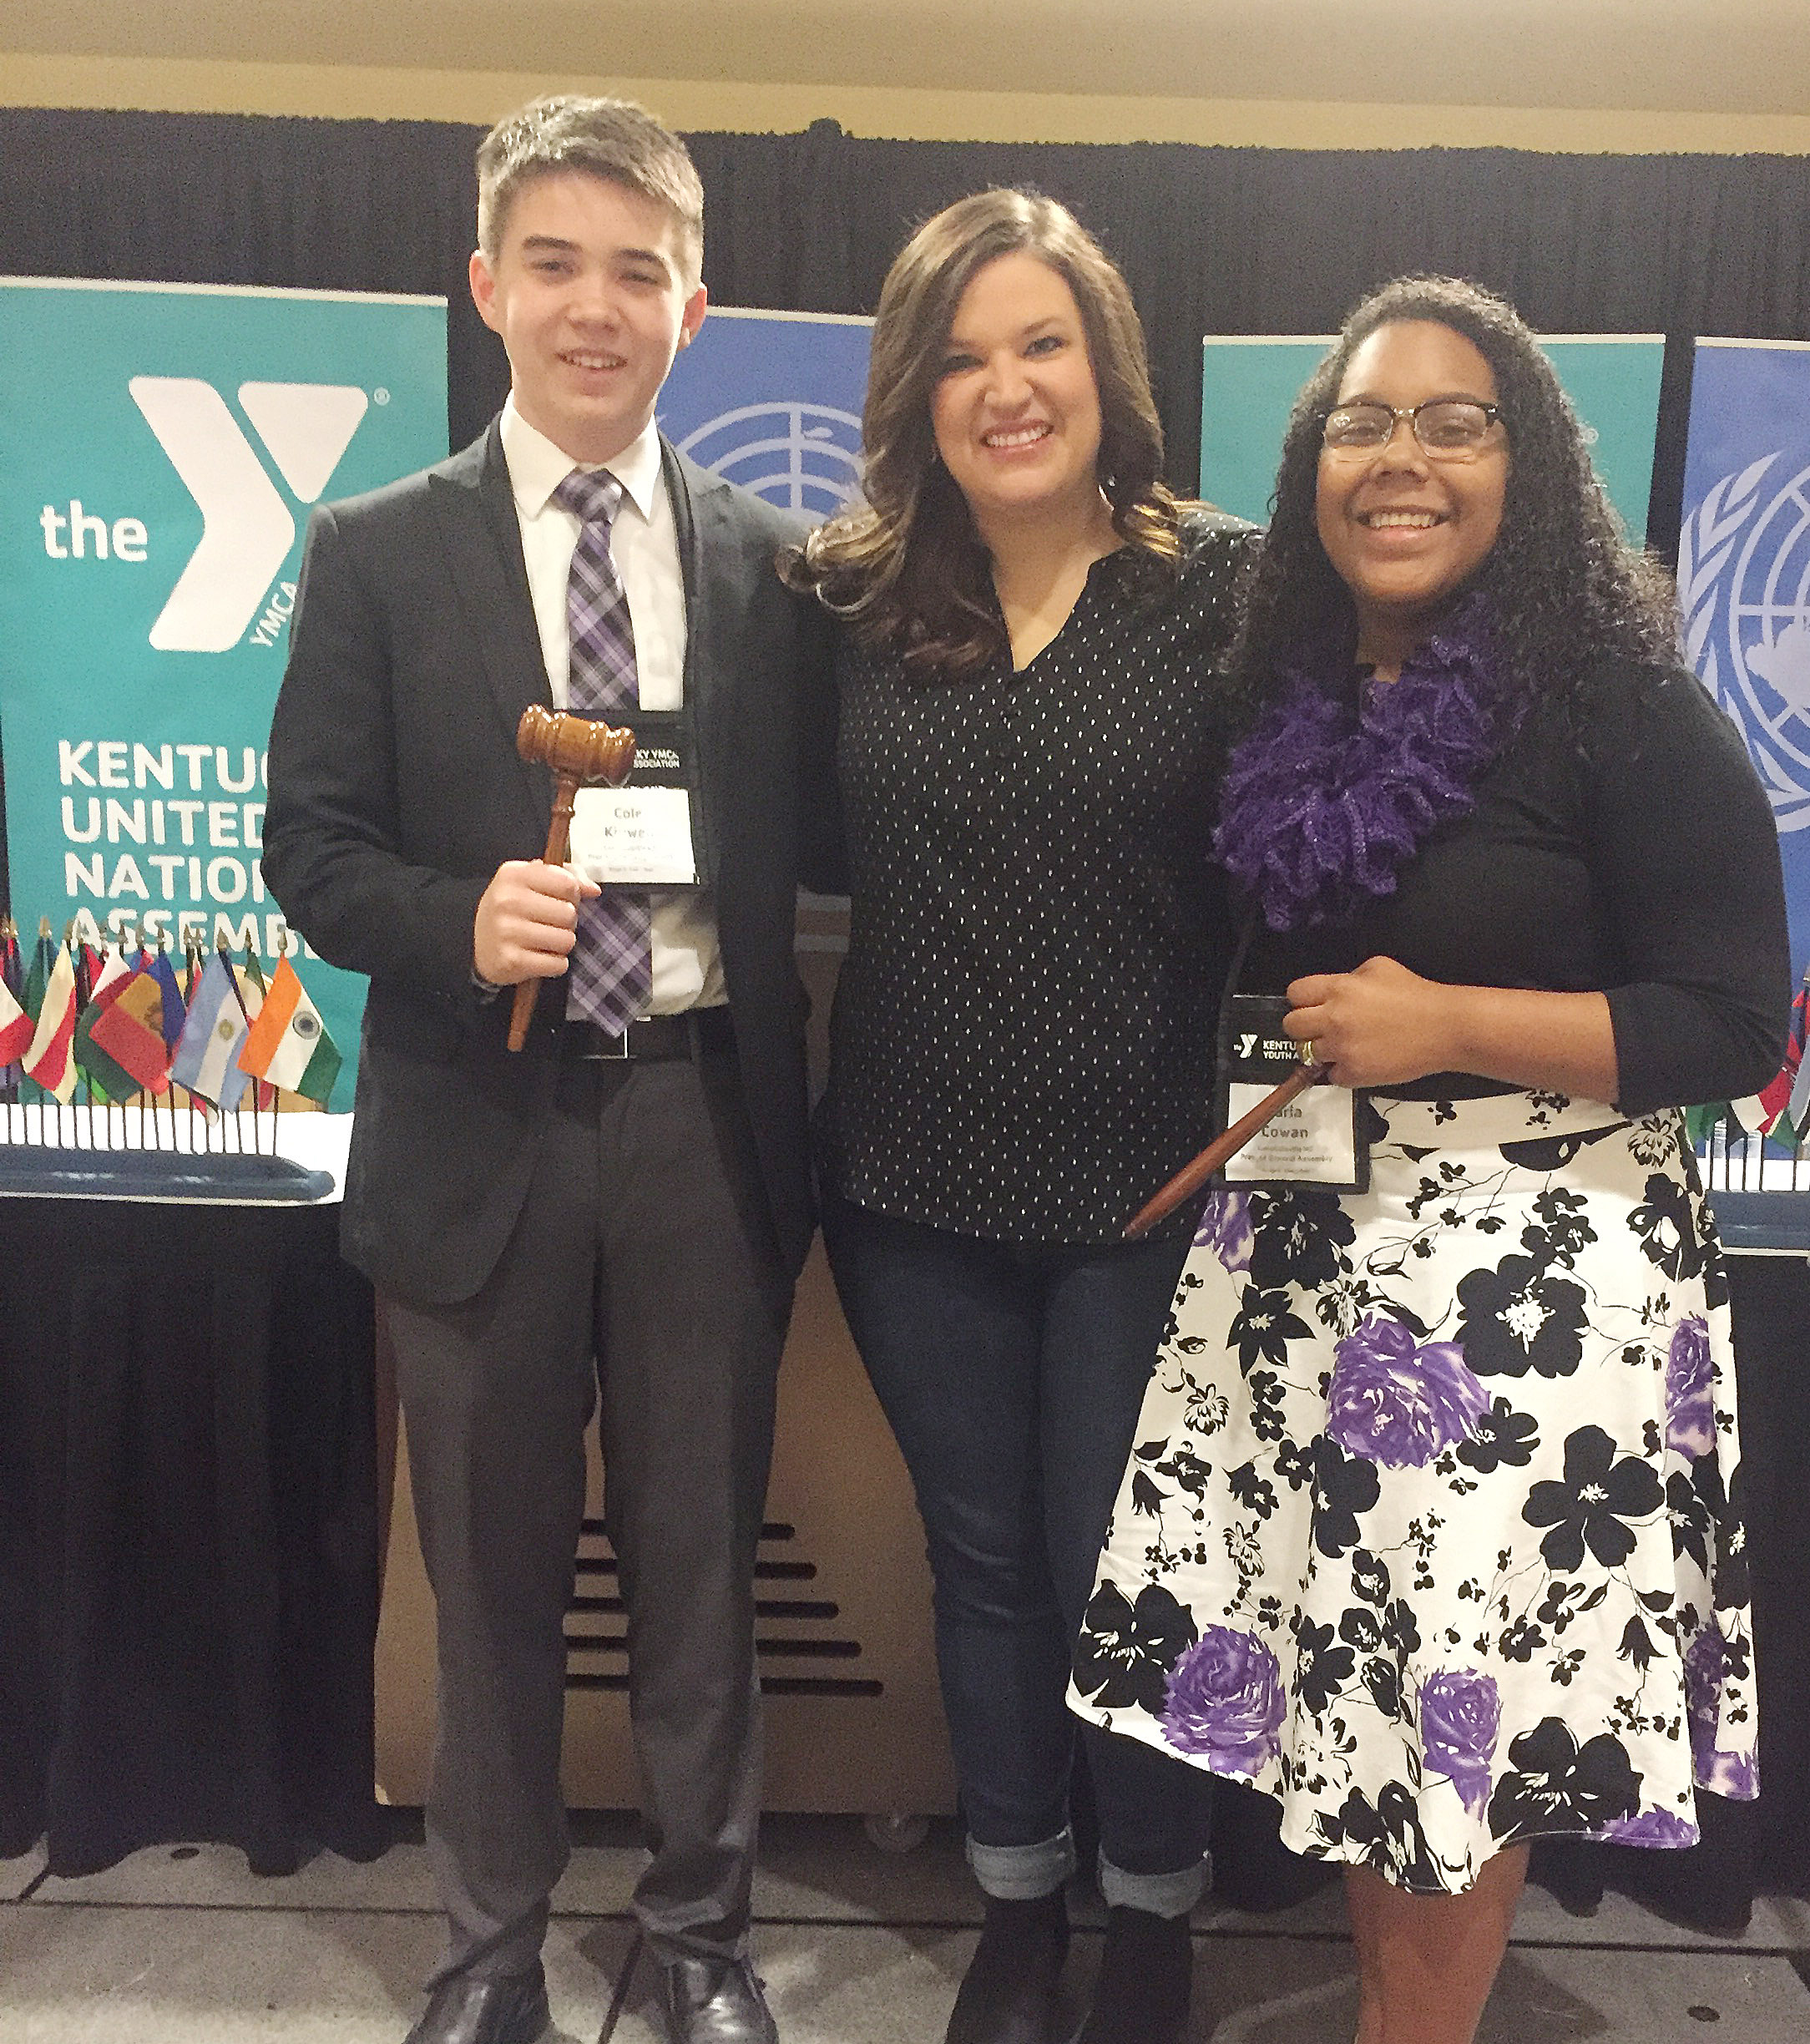 Campbellsville High School freshmen Cole Kidwell, at left, and Zaria Cowan, at right, attended KUNA and served in leadership roles. Cowan was president of the United Nations General Assembly, and Kidwell served as president of the Security Council. CMS eighth-grader teacher Robbilyn Speer sponsors the CMS Y-Club.